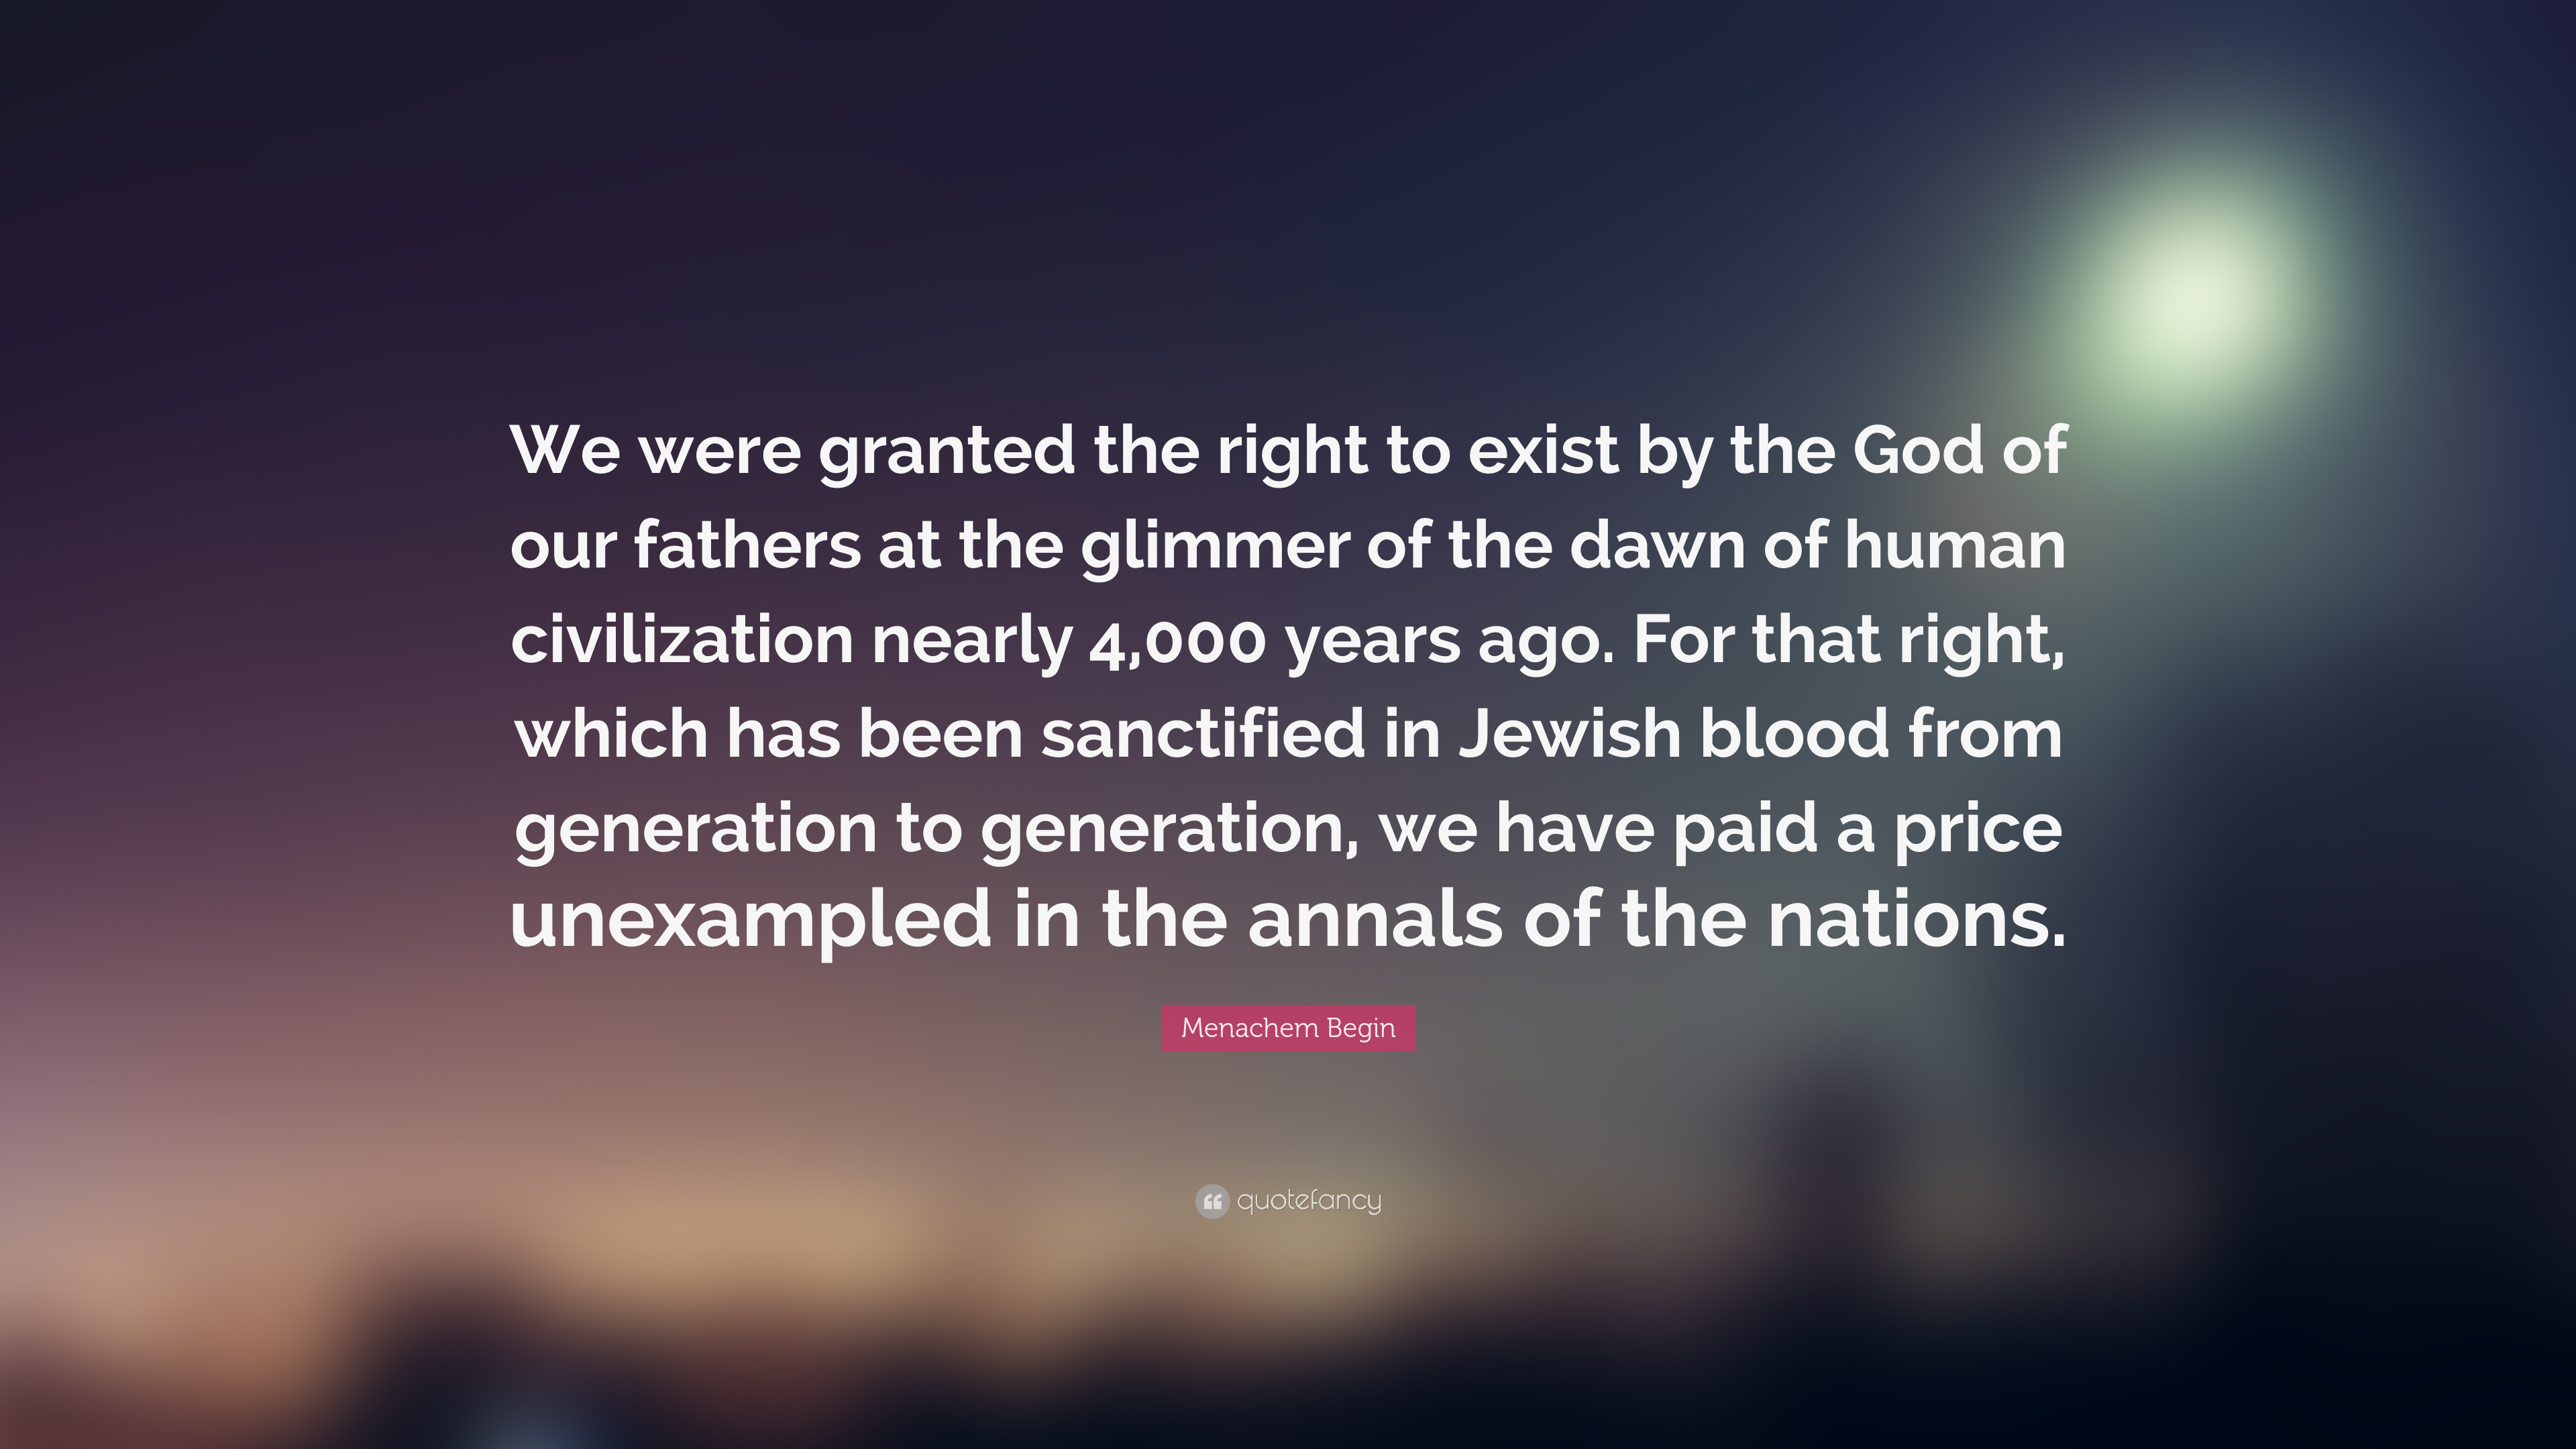 Menachem begin quote we were granted the right to exist by the god menachem begin quote we were granted the right to exist by the god of thecheapjerseys Gallery